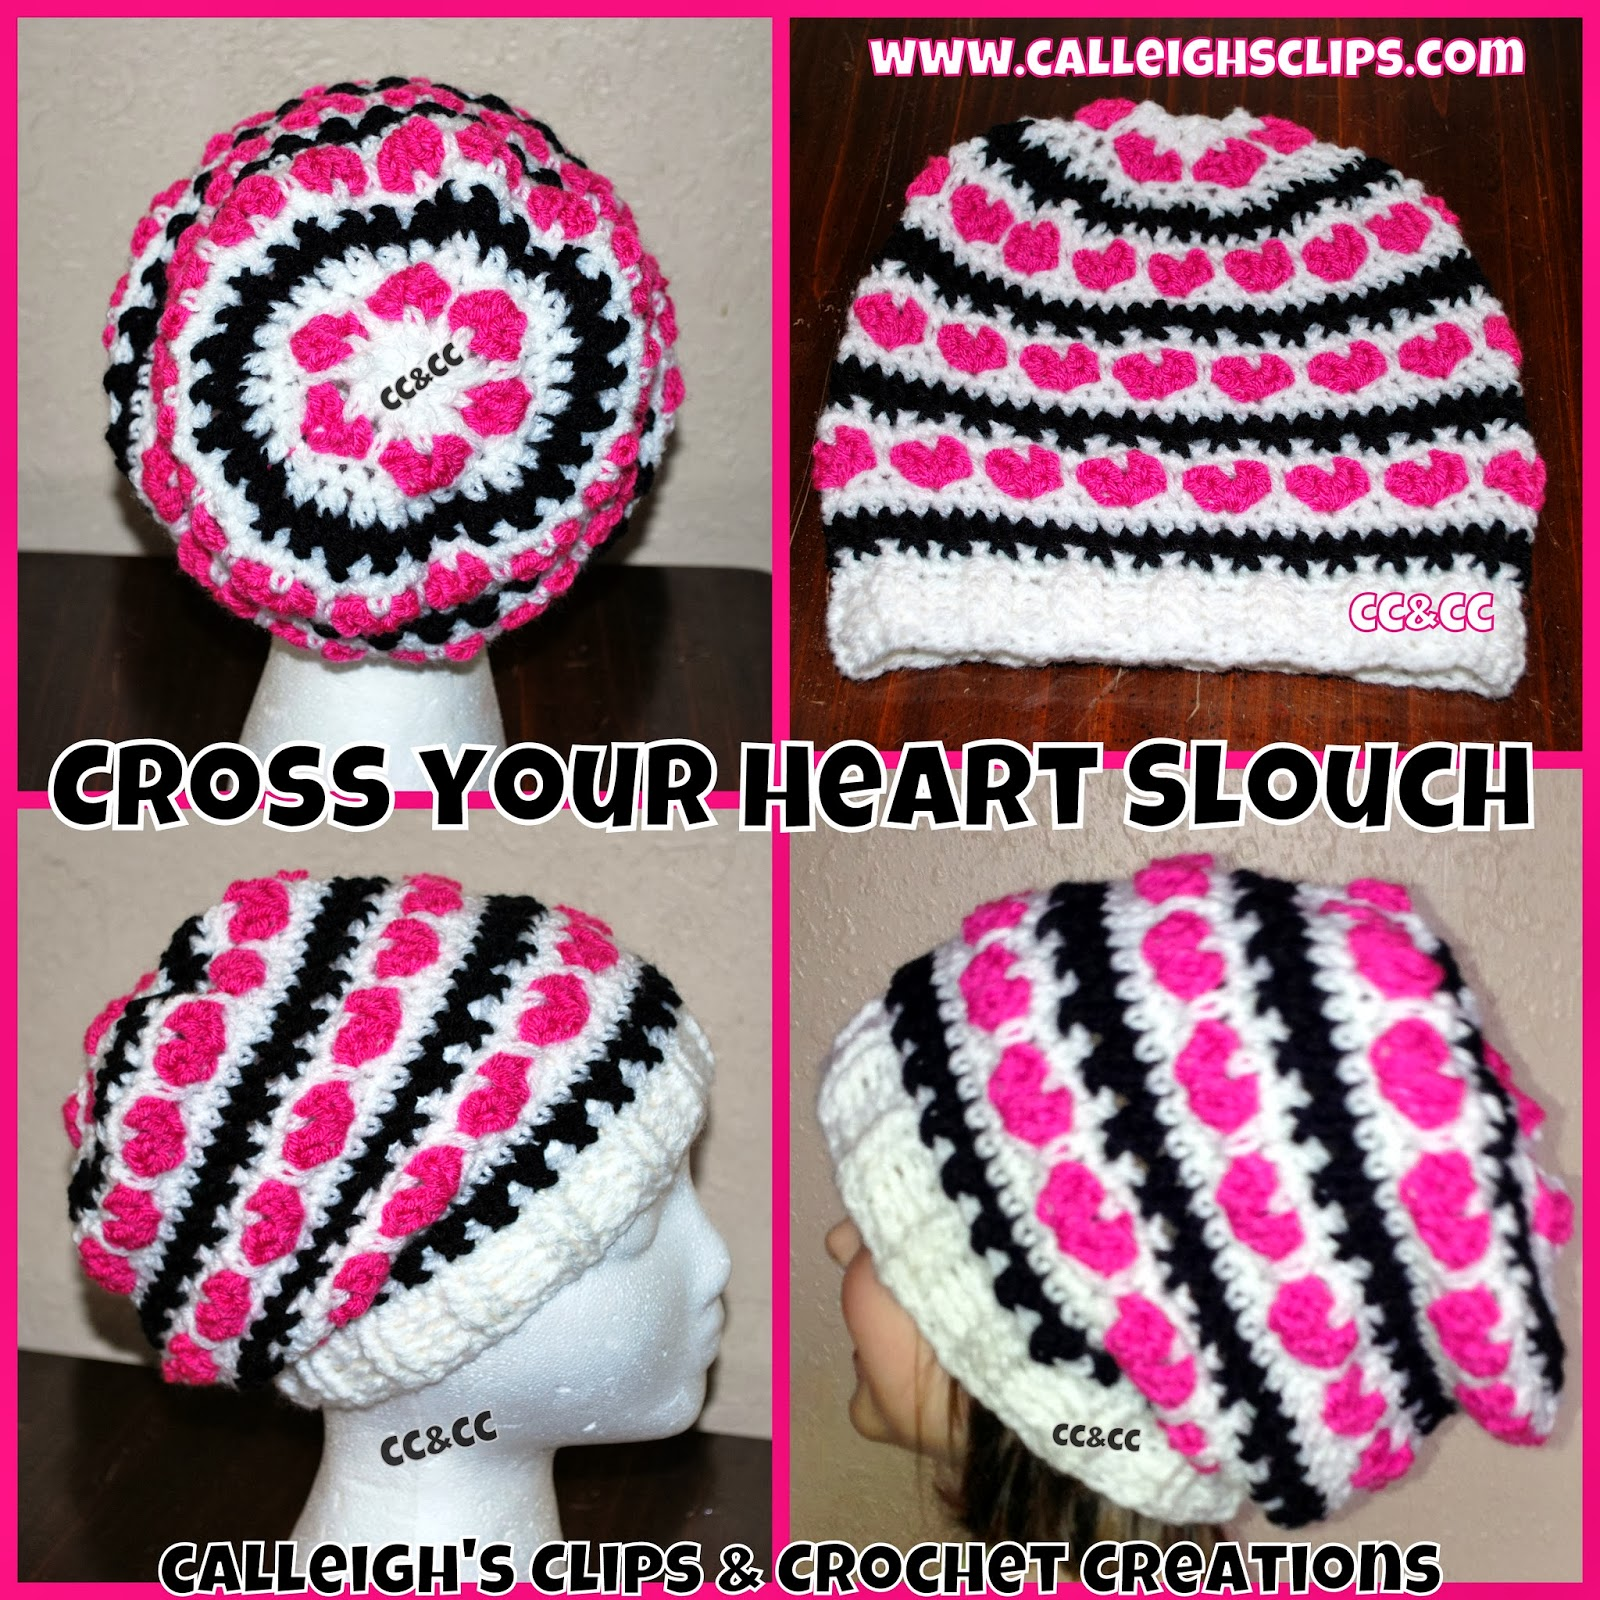 Free Crochet Heart Hat Pattern : Calleighs Clips & Crochet Creations: Cross Your Heart ...